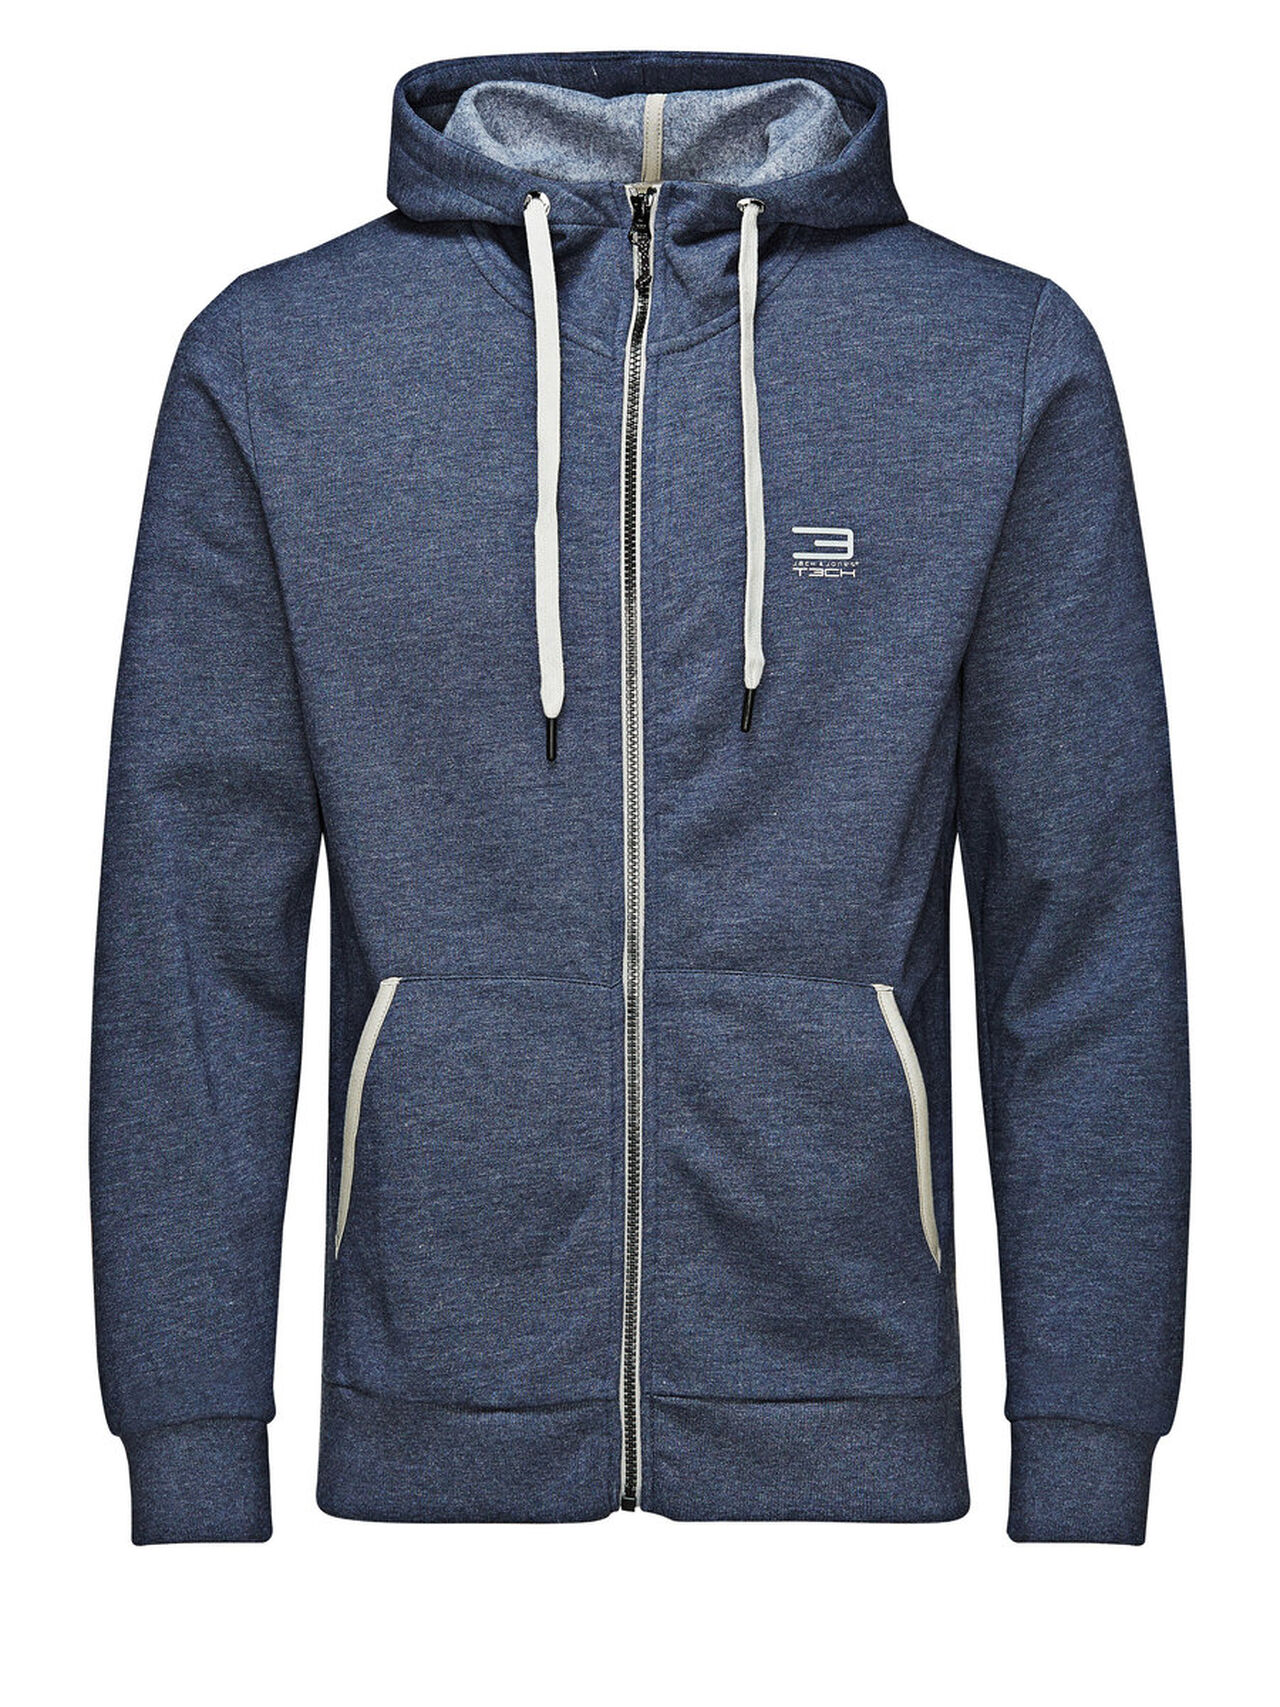 Jack & Jones Tech JJSLIDER Sweatvesten Blauw